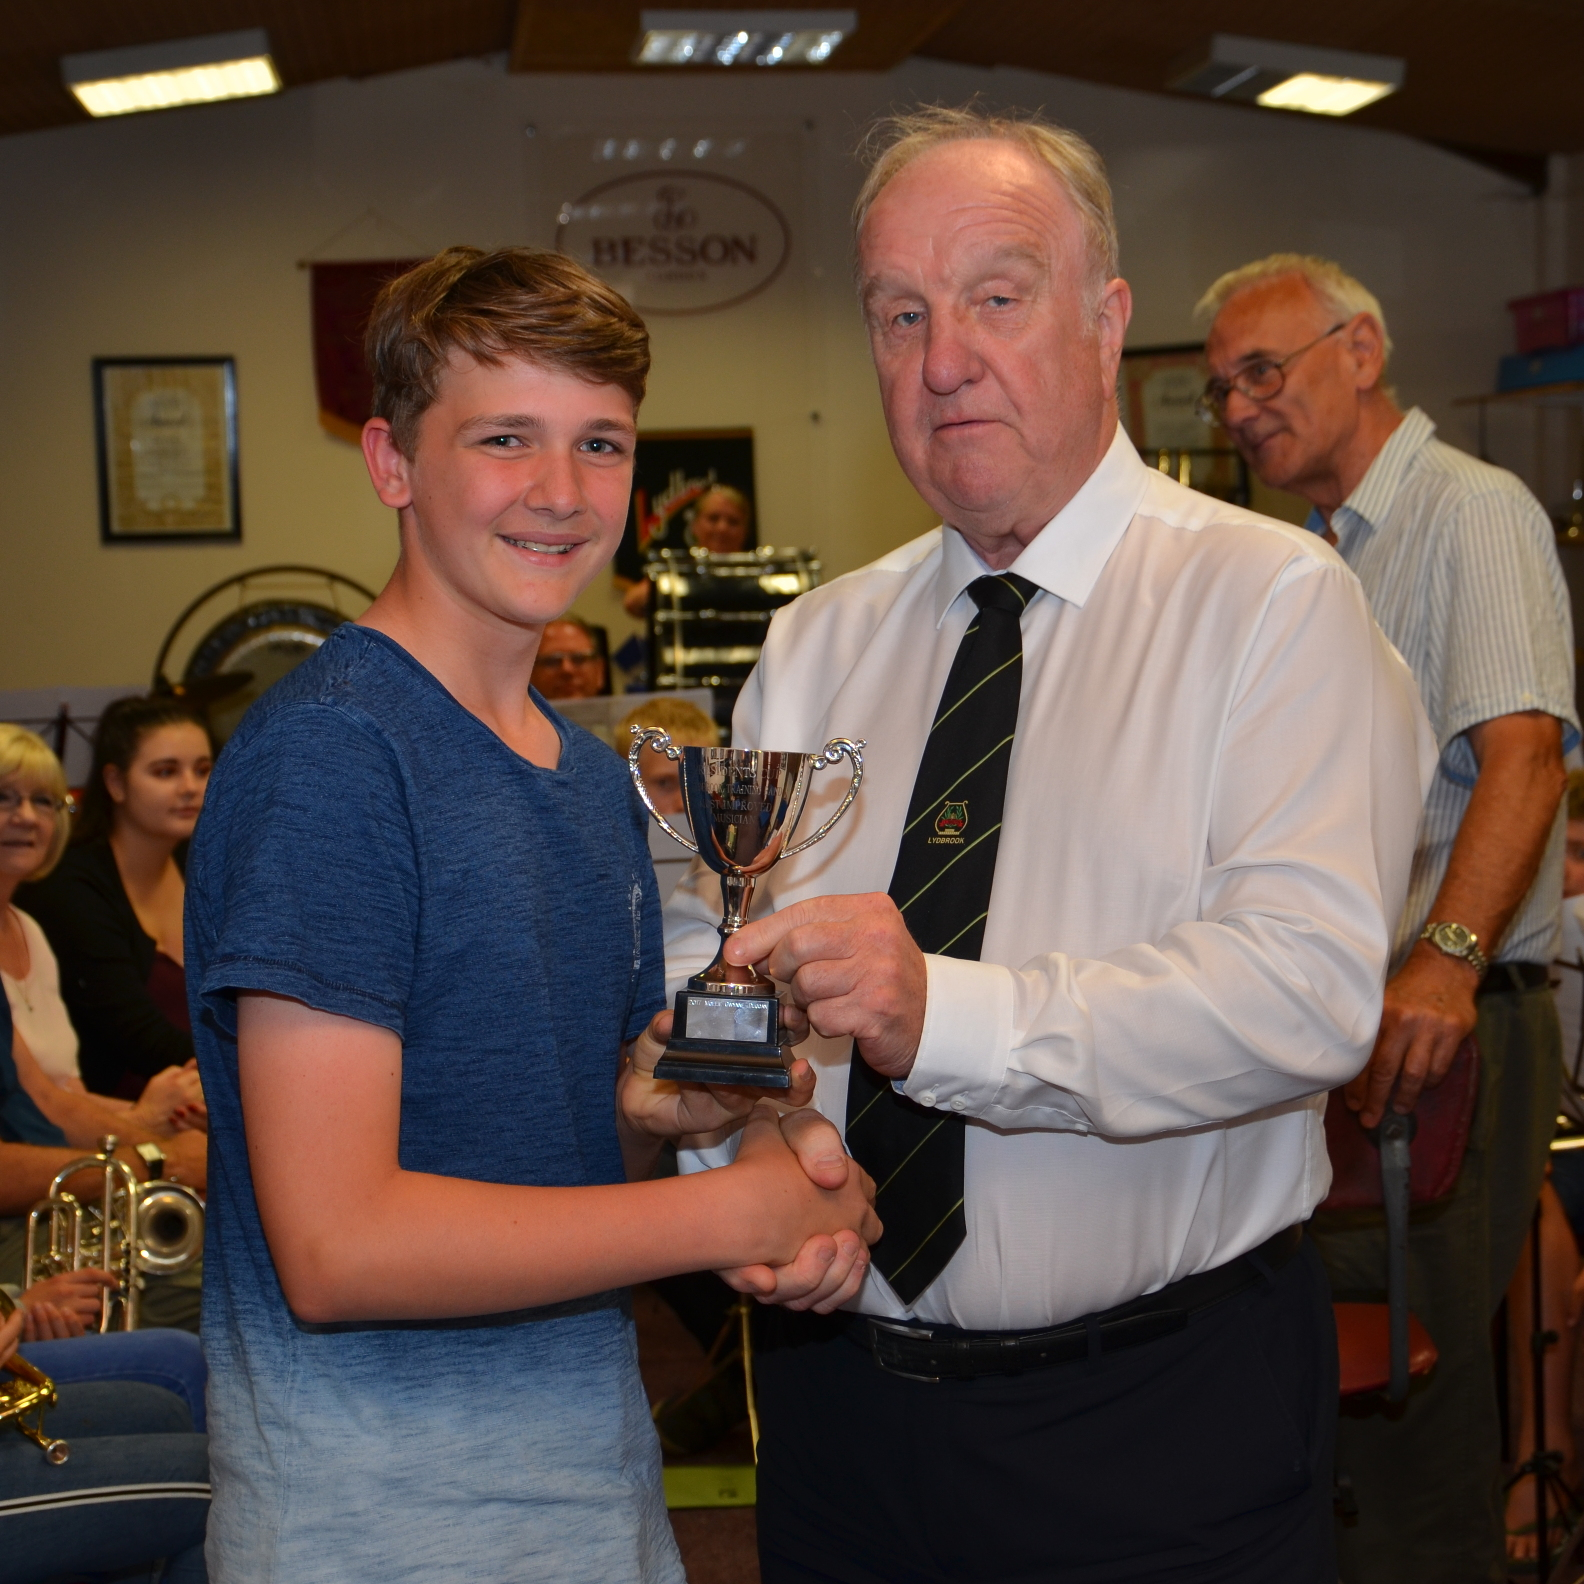 Peter presented the Presidents cup for the most improved musician to 14 year old percussion player Will Hamilton.